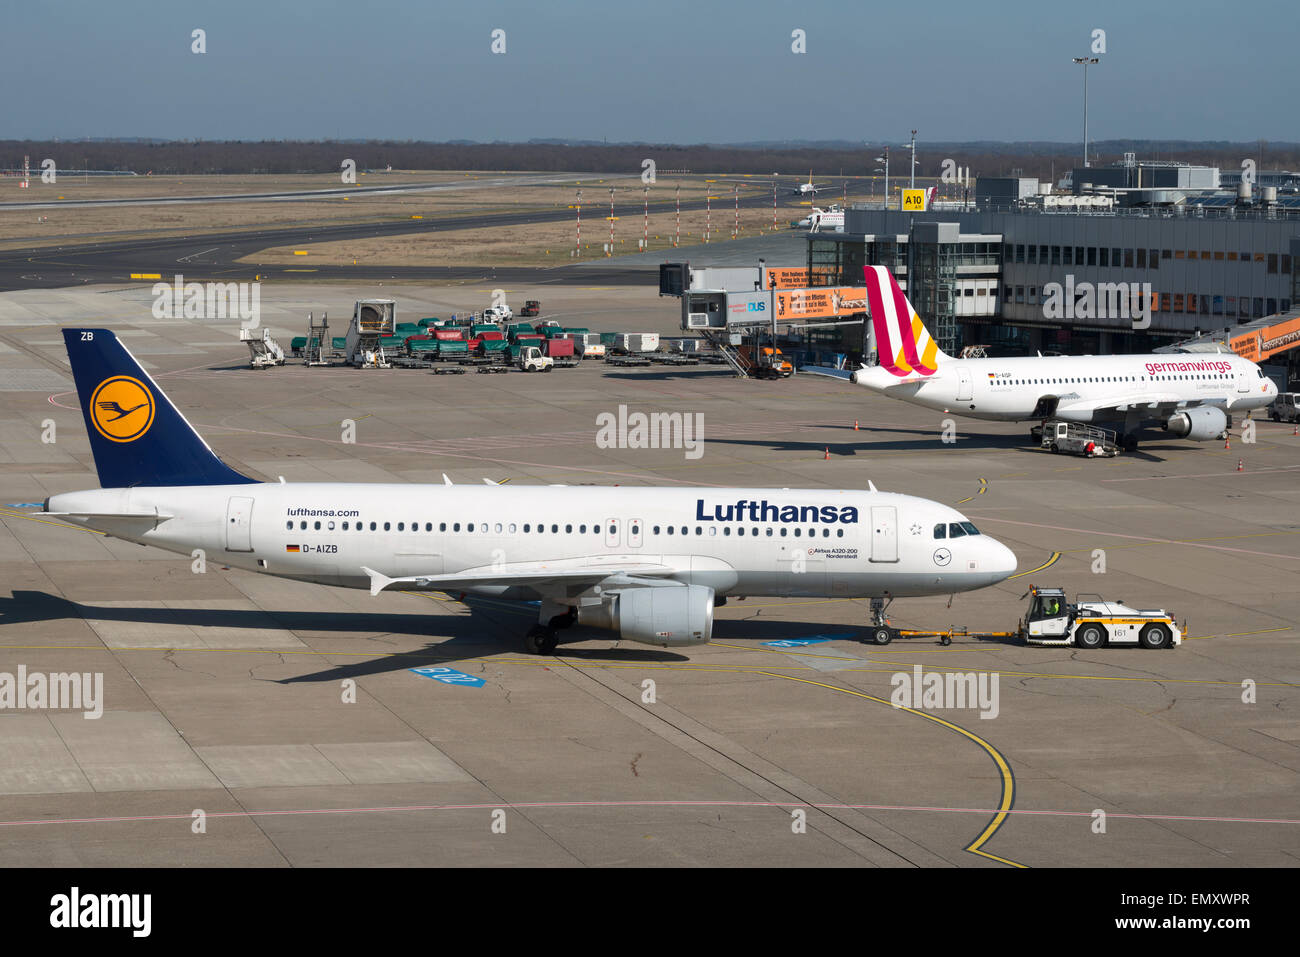 Lufthansa & Germanwings airliners, Dusseldorf International airport Germany. - Stock Image